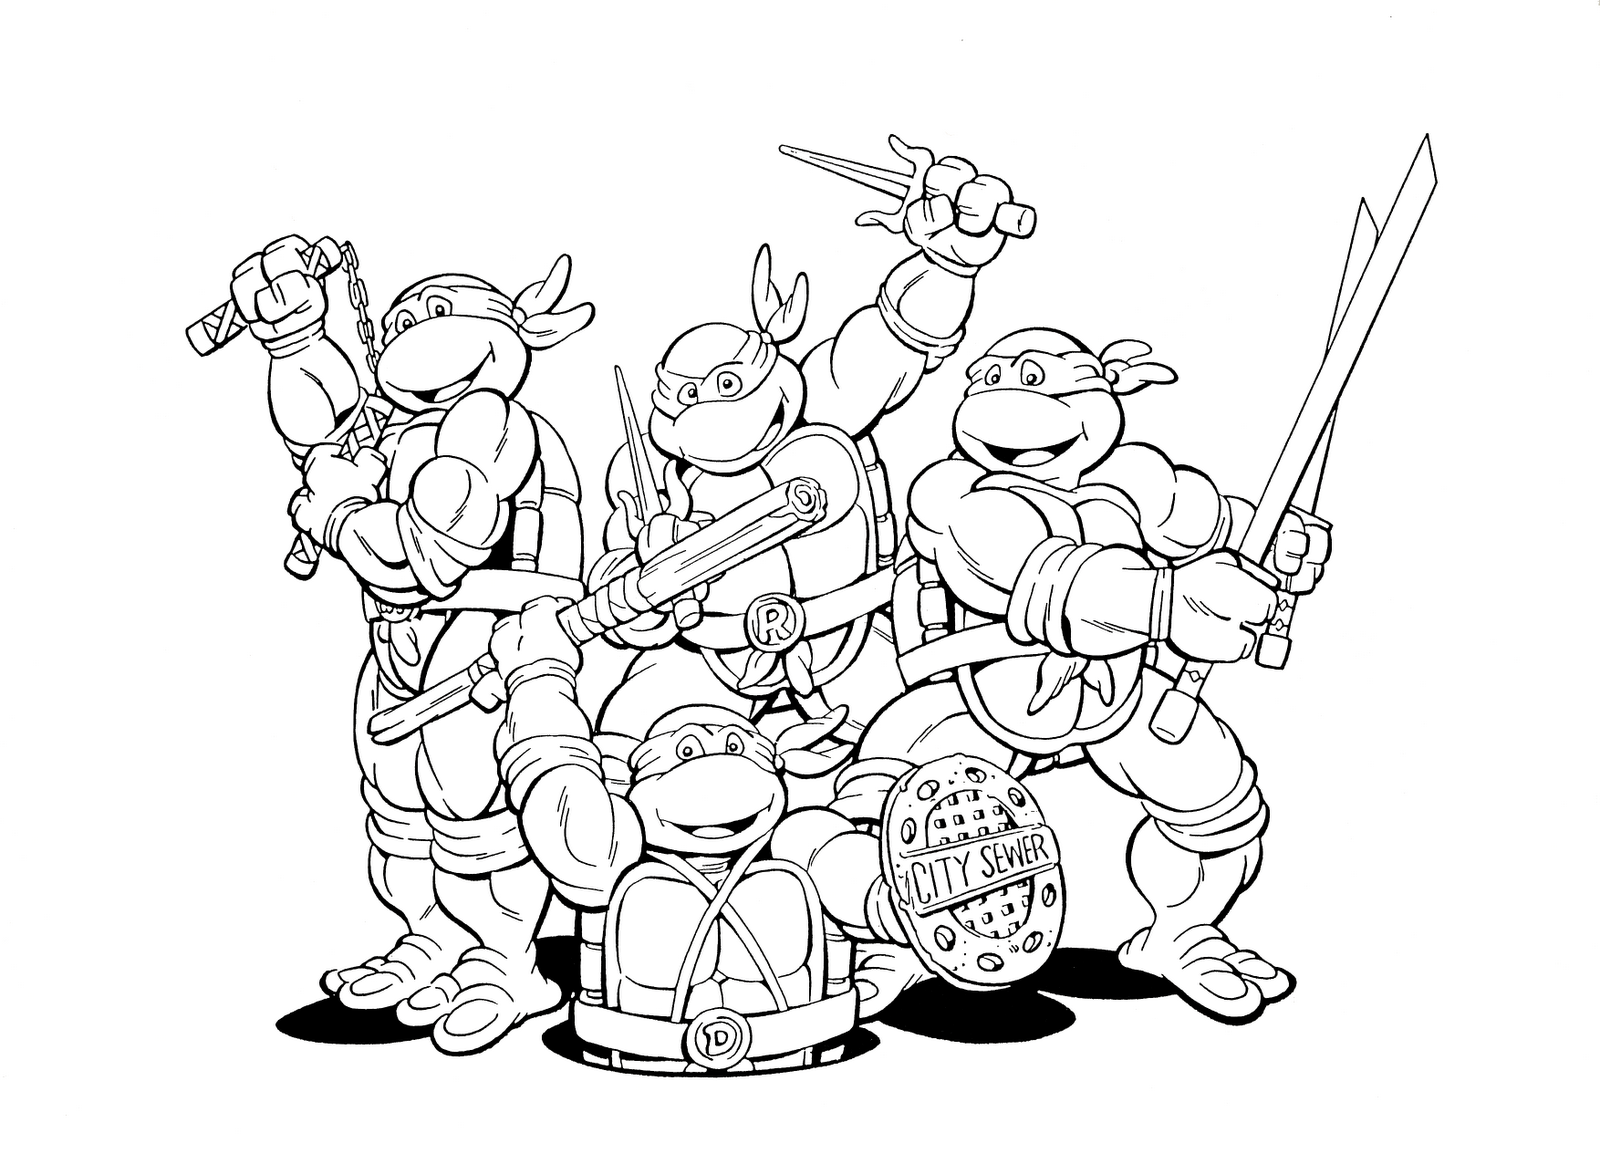 Coloring Pages Ninja Turtles : Craftoholic teenage mutant ninja turtles coloring pages